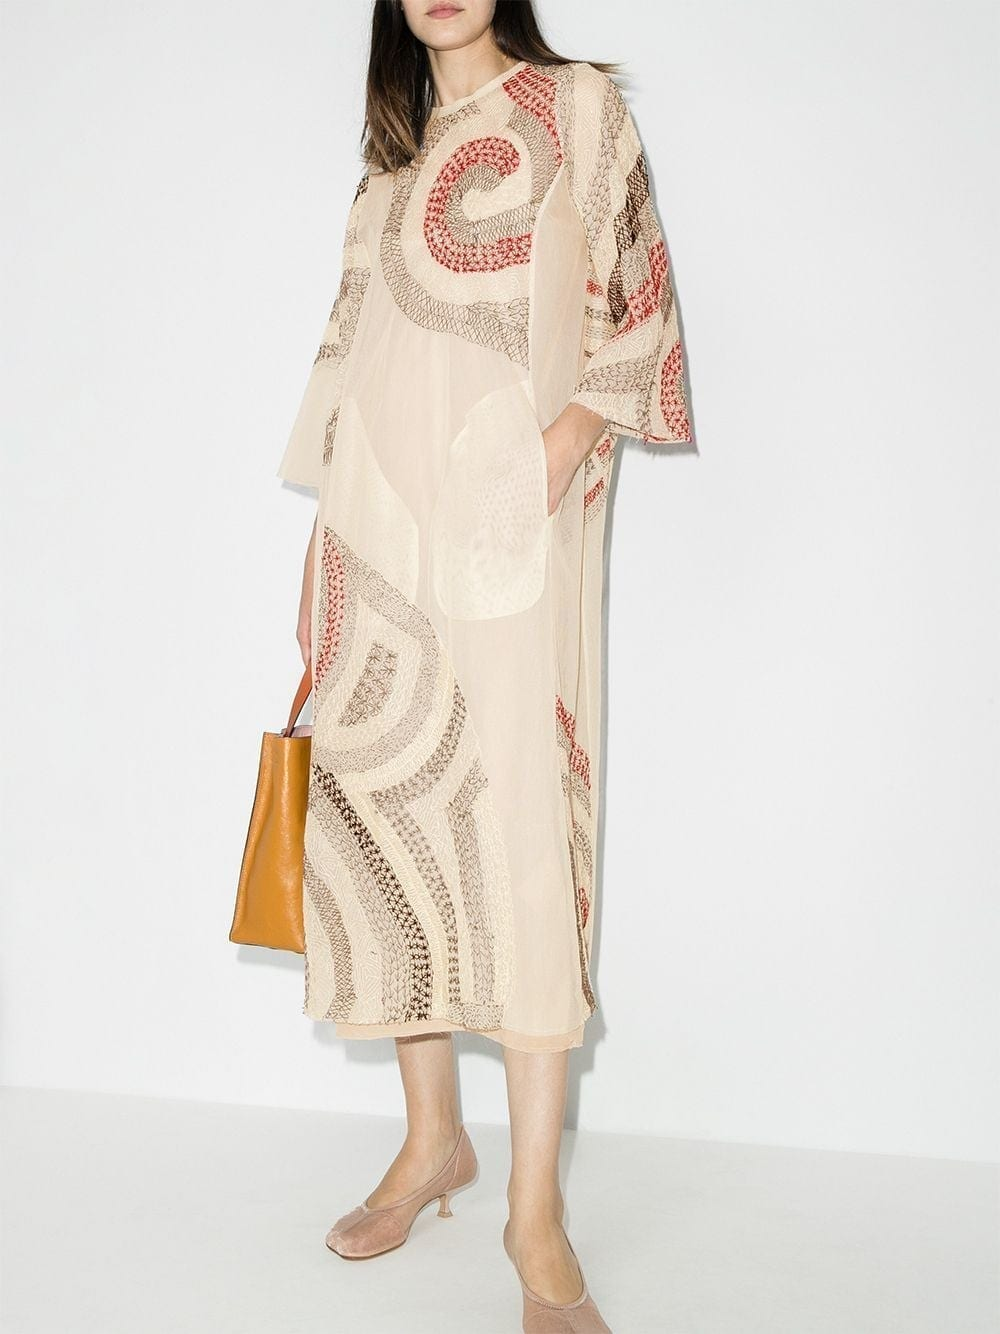 BY WALID Rima Embroidered Dress